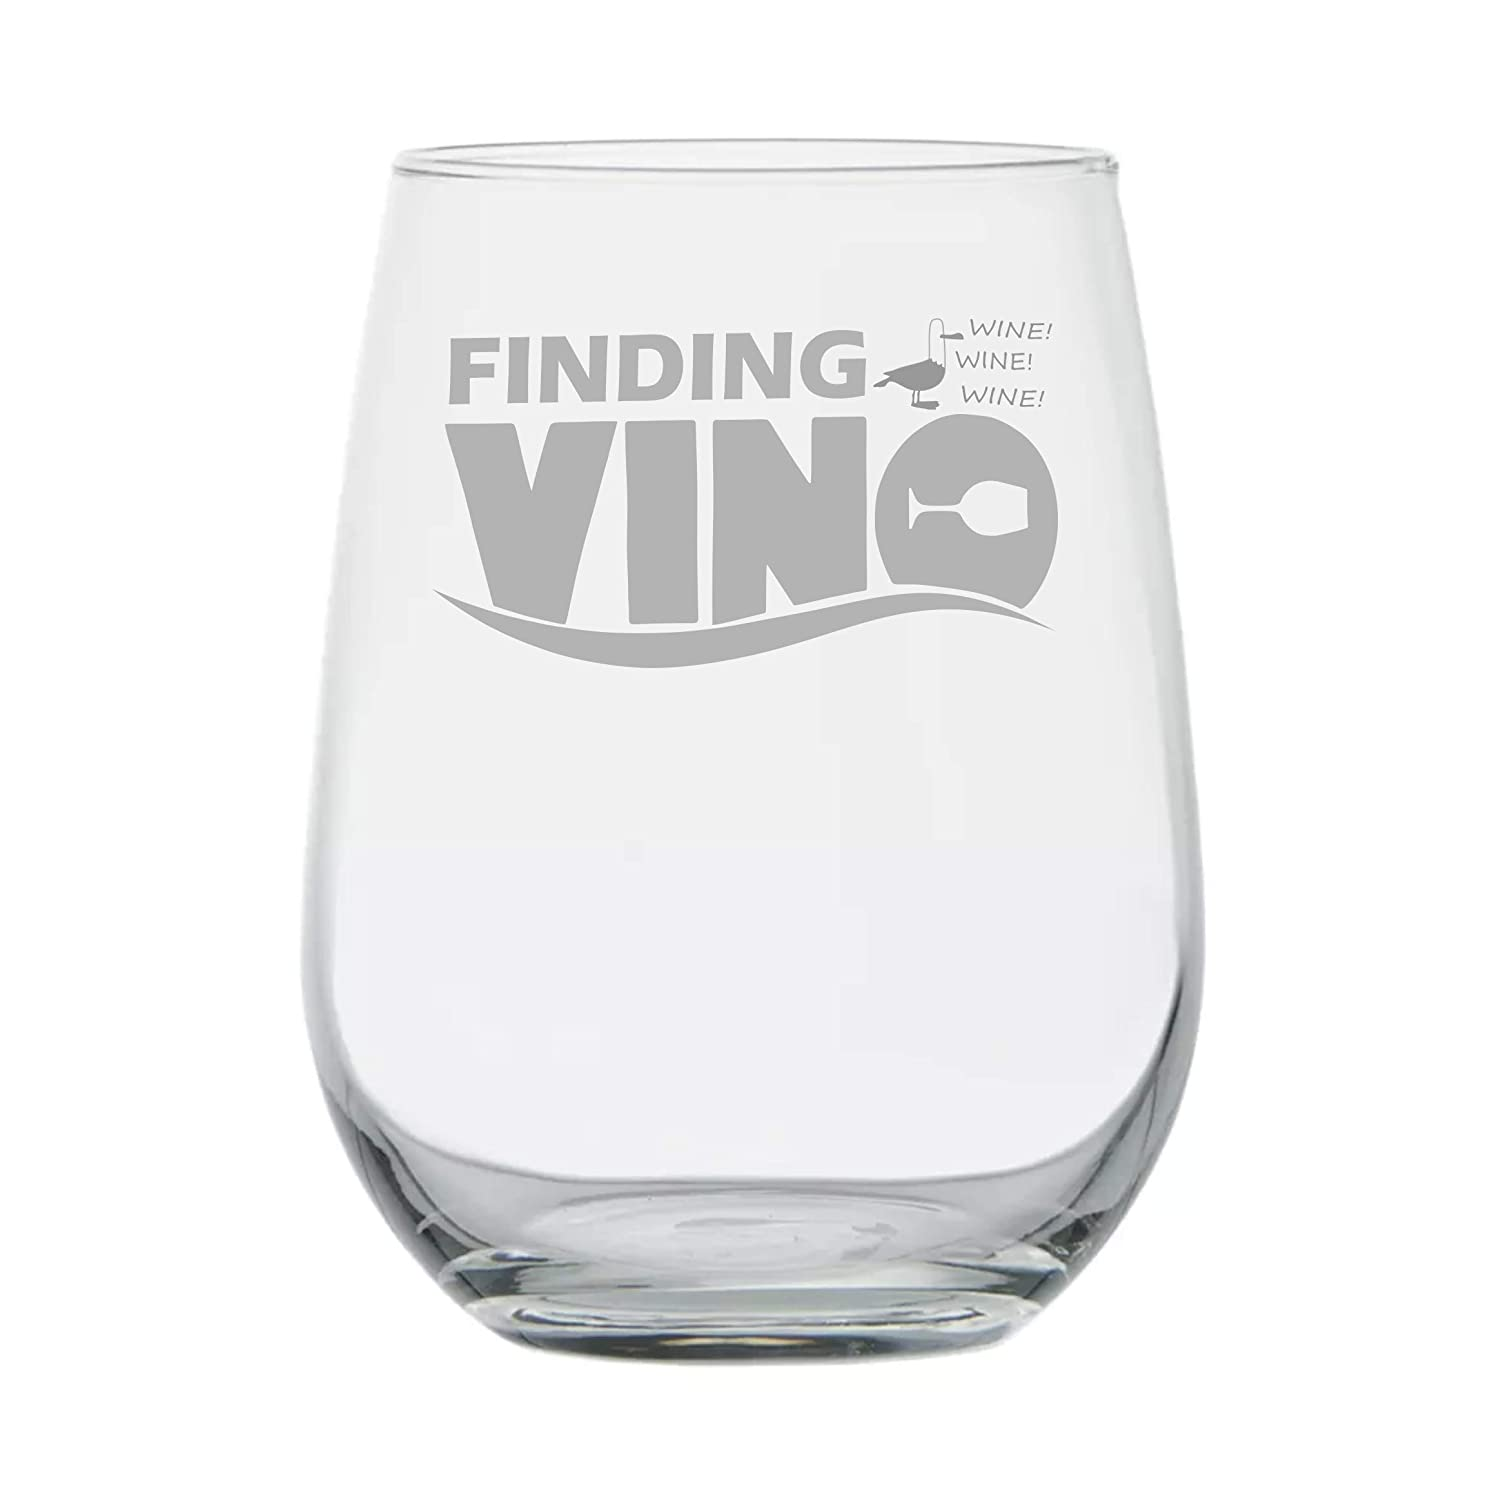 Finding Vino - 17 oz Stemless Glass - Disney Wine Glass - Gift for Wine Lovers - Disney Gifts - Birthday Gift - Gifts for Friend - Mermaid - Fishing Gifts - Disney Mom Gift